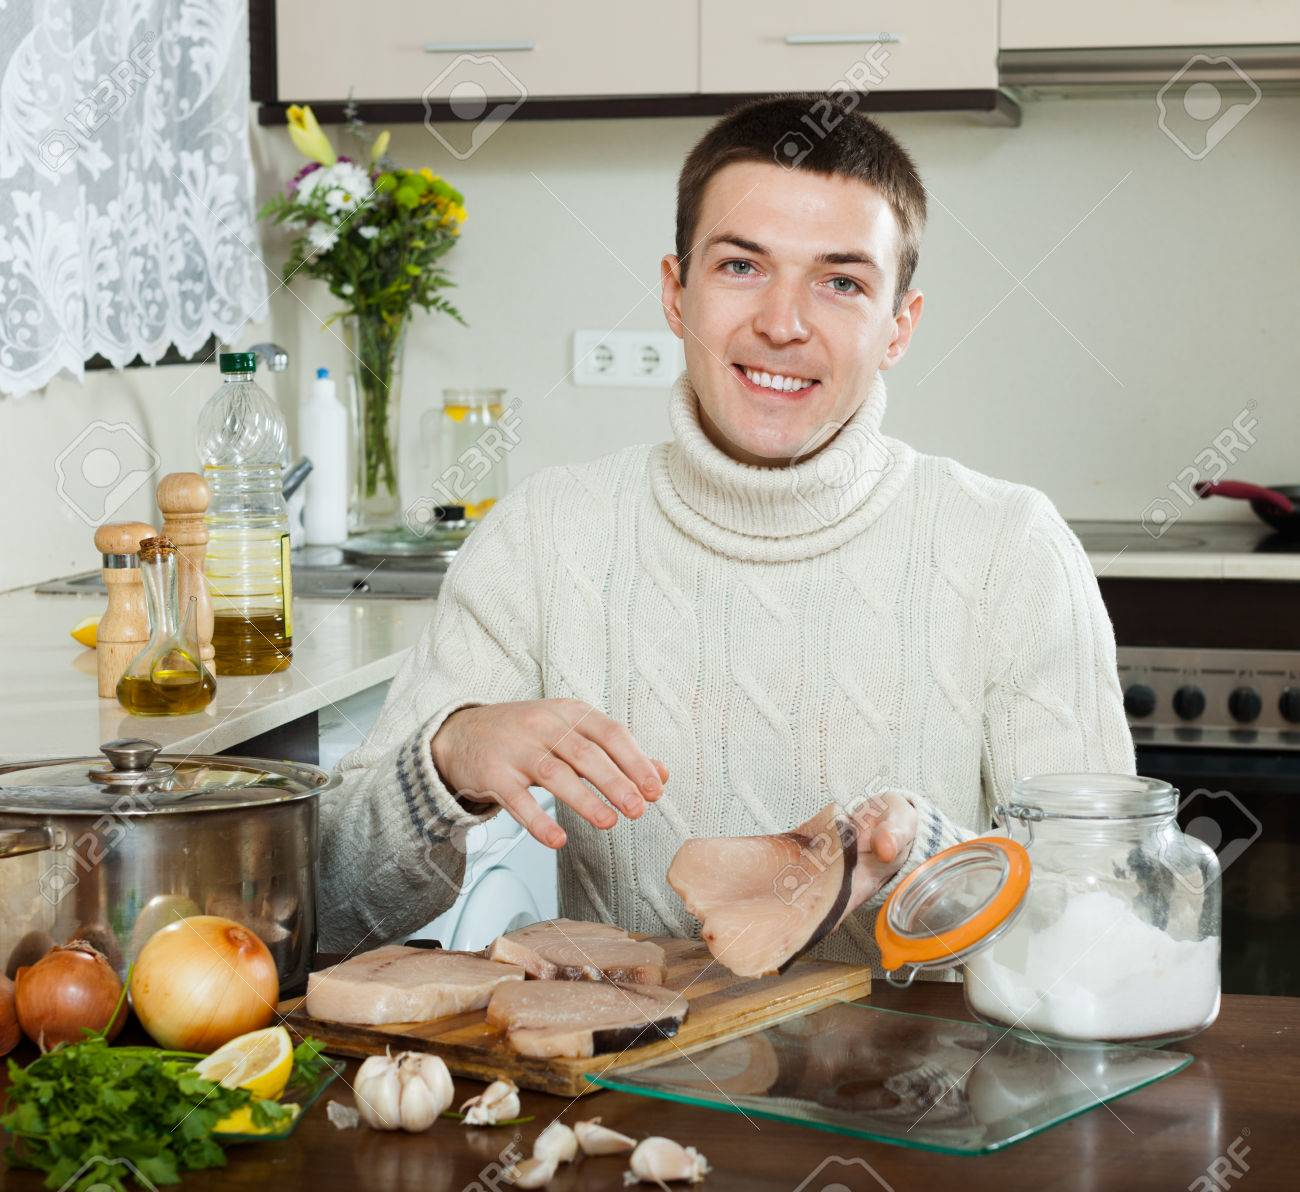 Home Kitchen Cooking Happy Handsome Man Cooking Steak Of Porbeagle In Home Kitchen